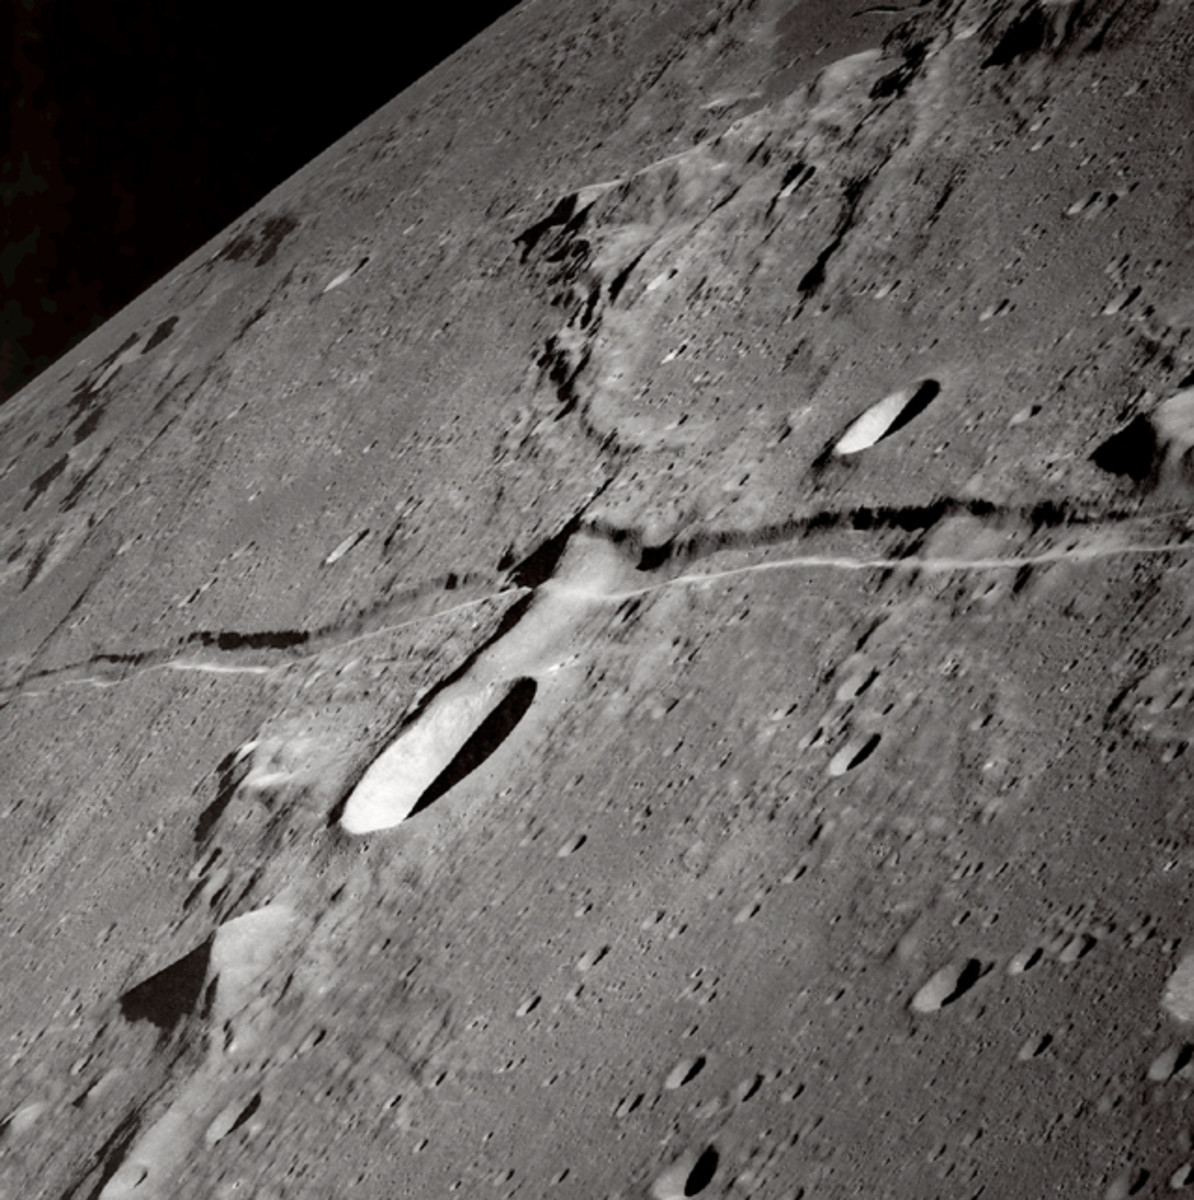 This is the cleft left behind after the Prophet Muhammad (pbuh) split the moon over 1400 years ago! Please copy and paste this link to see for yourself: http://apod.nasa.gov/apod/ap021029.html